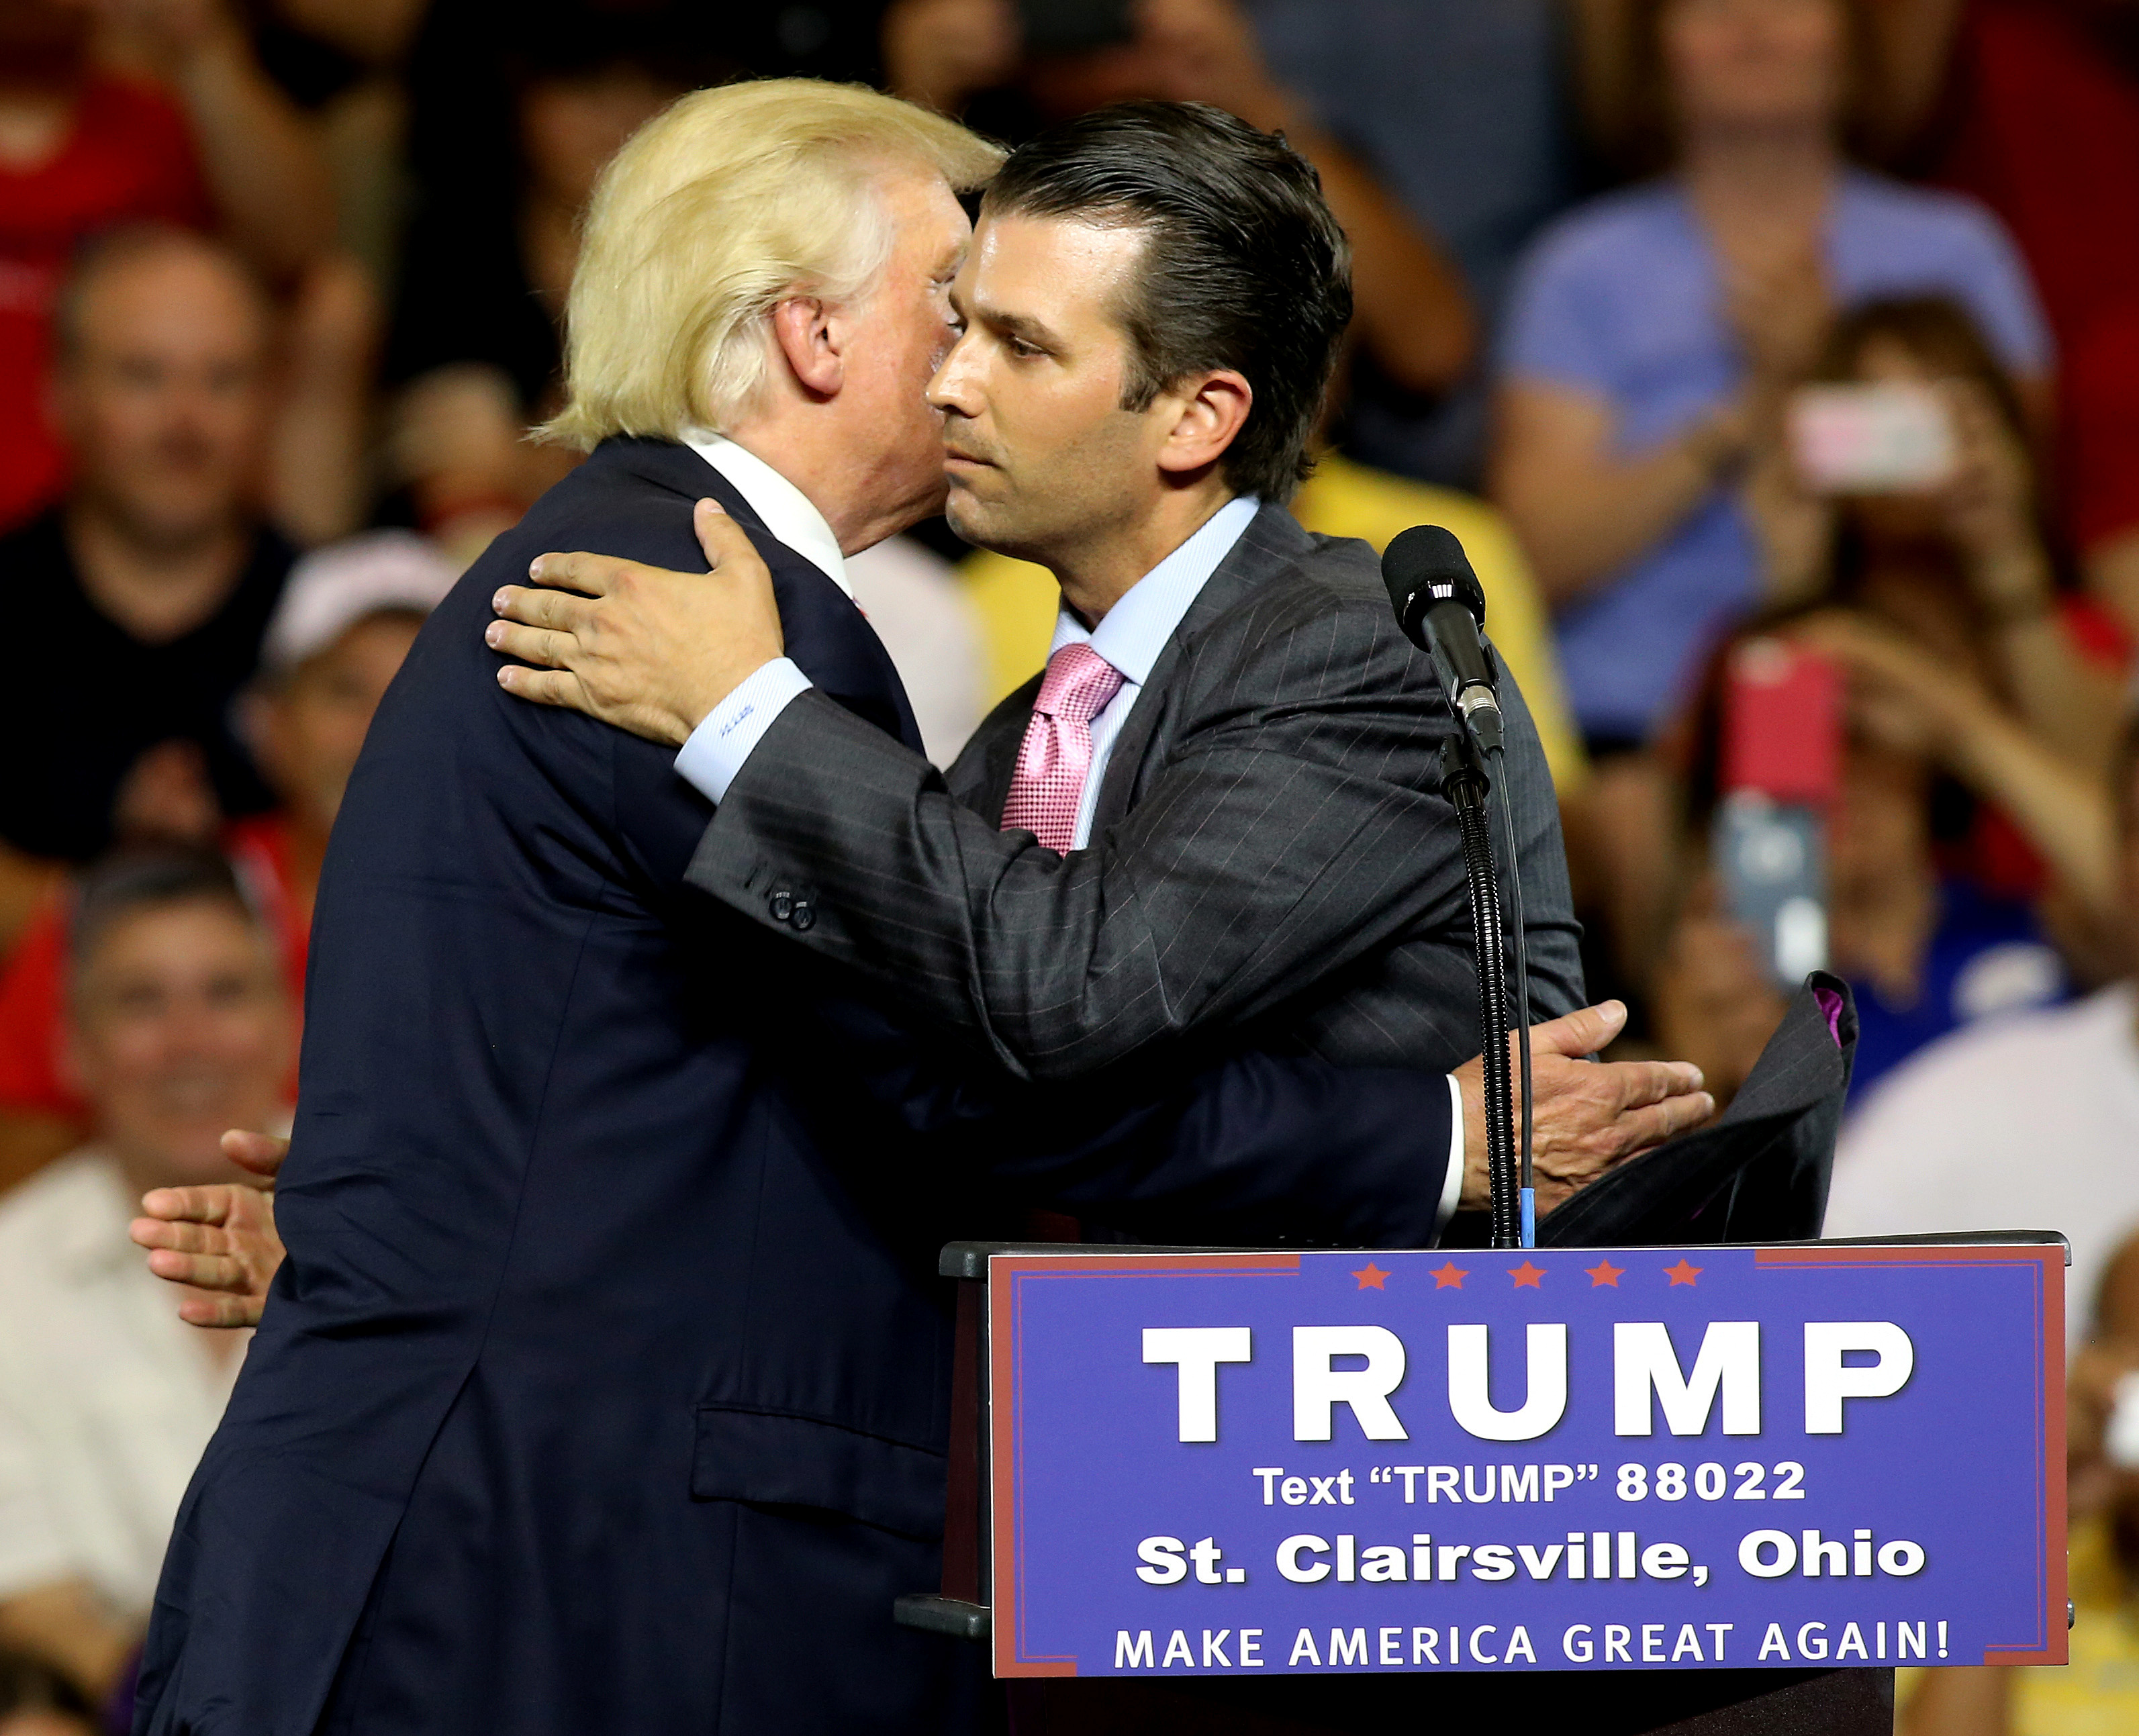 Donald Trump hugs his son Donald Trump Jr. at a campaign rally in St. Clairsville, Ohio June 28, 2016. REUTERS/Aaron Josefczyk